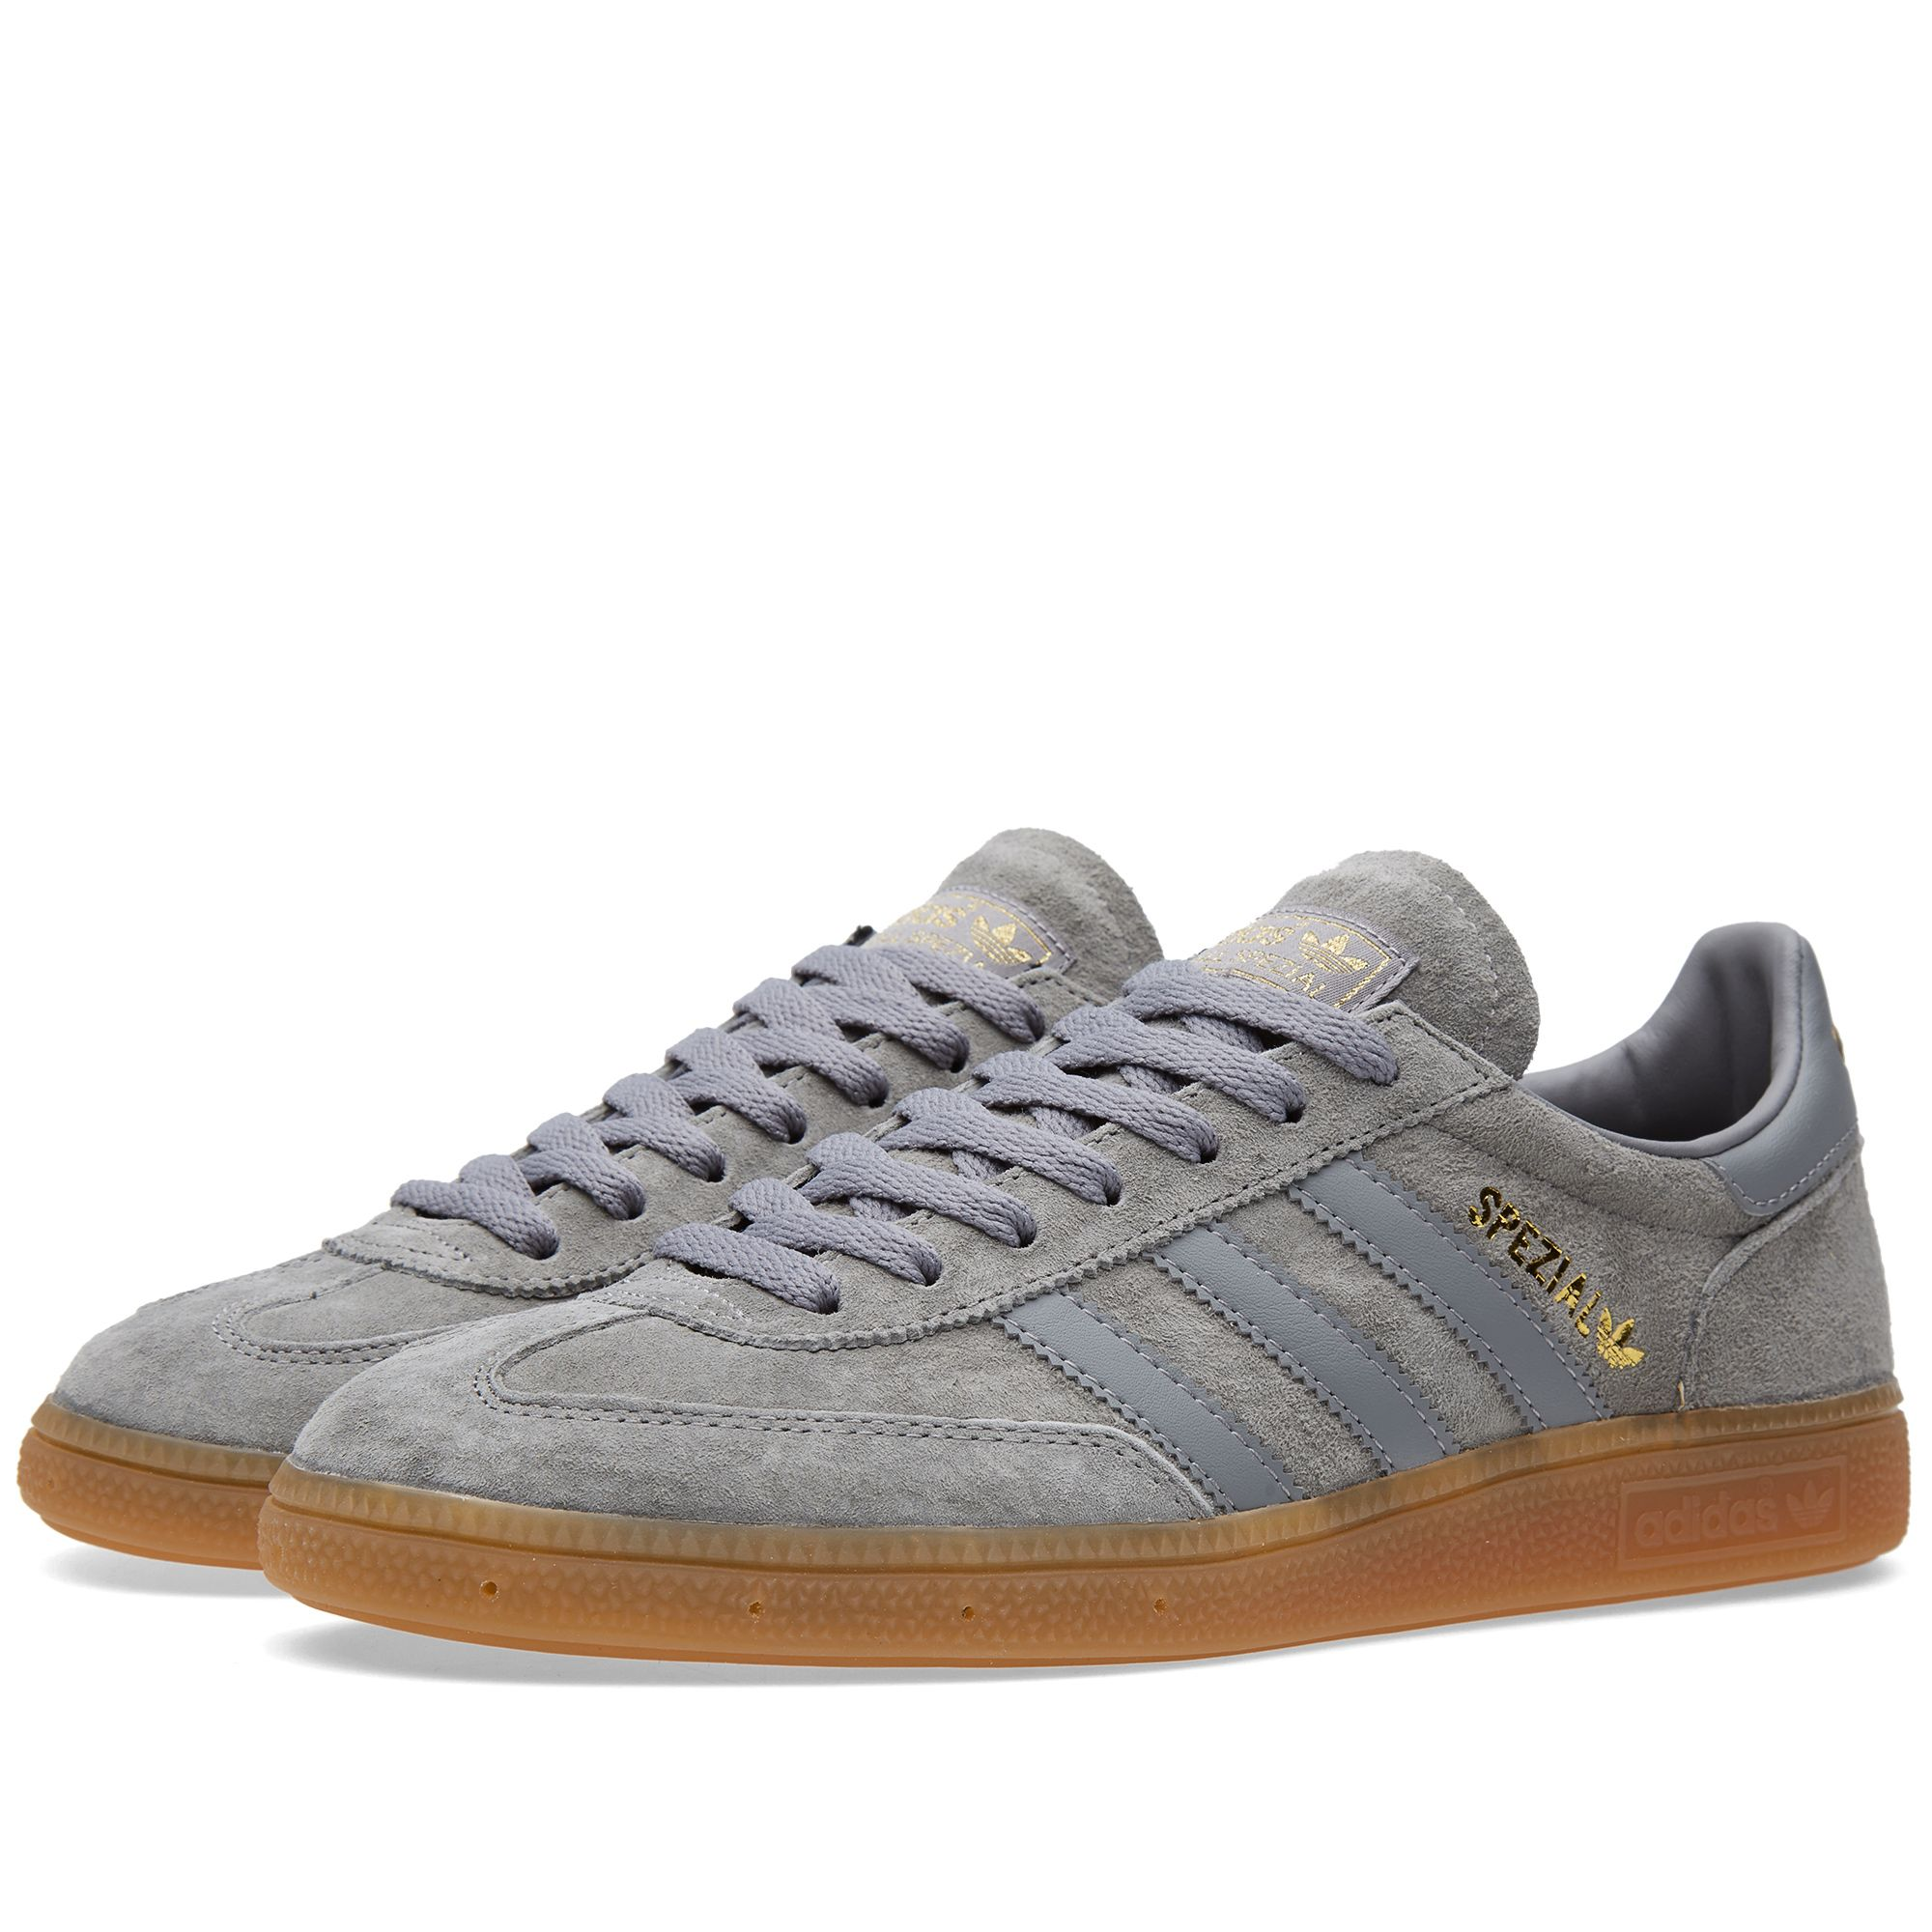 watch 771ec 91858 ADIDAS SPEZIAL Solid Grey  Gum